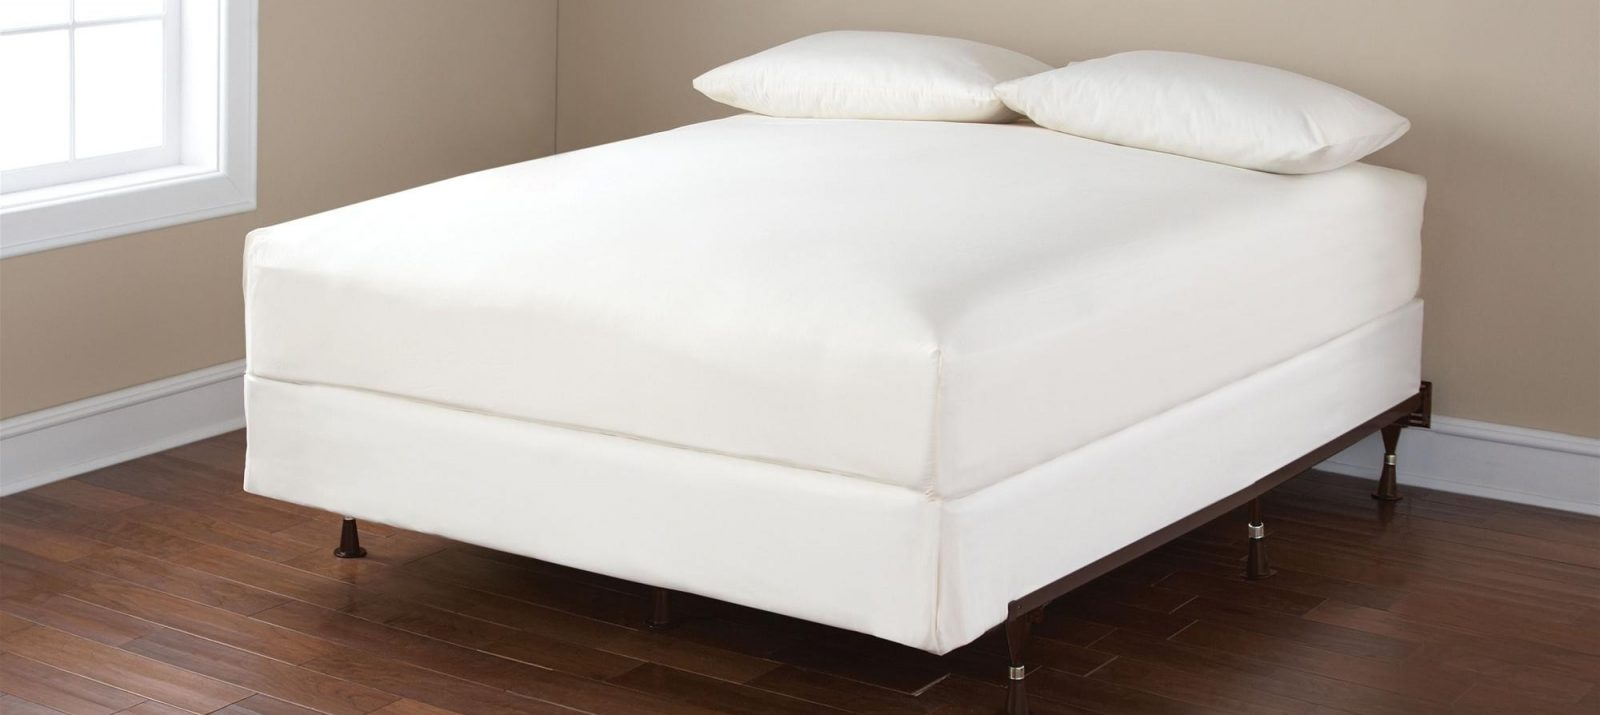 How To Store A Mattress, Box Spring, And Bed Frame